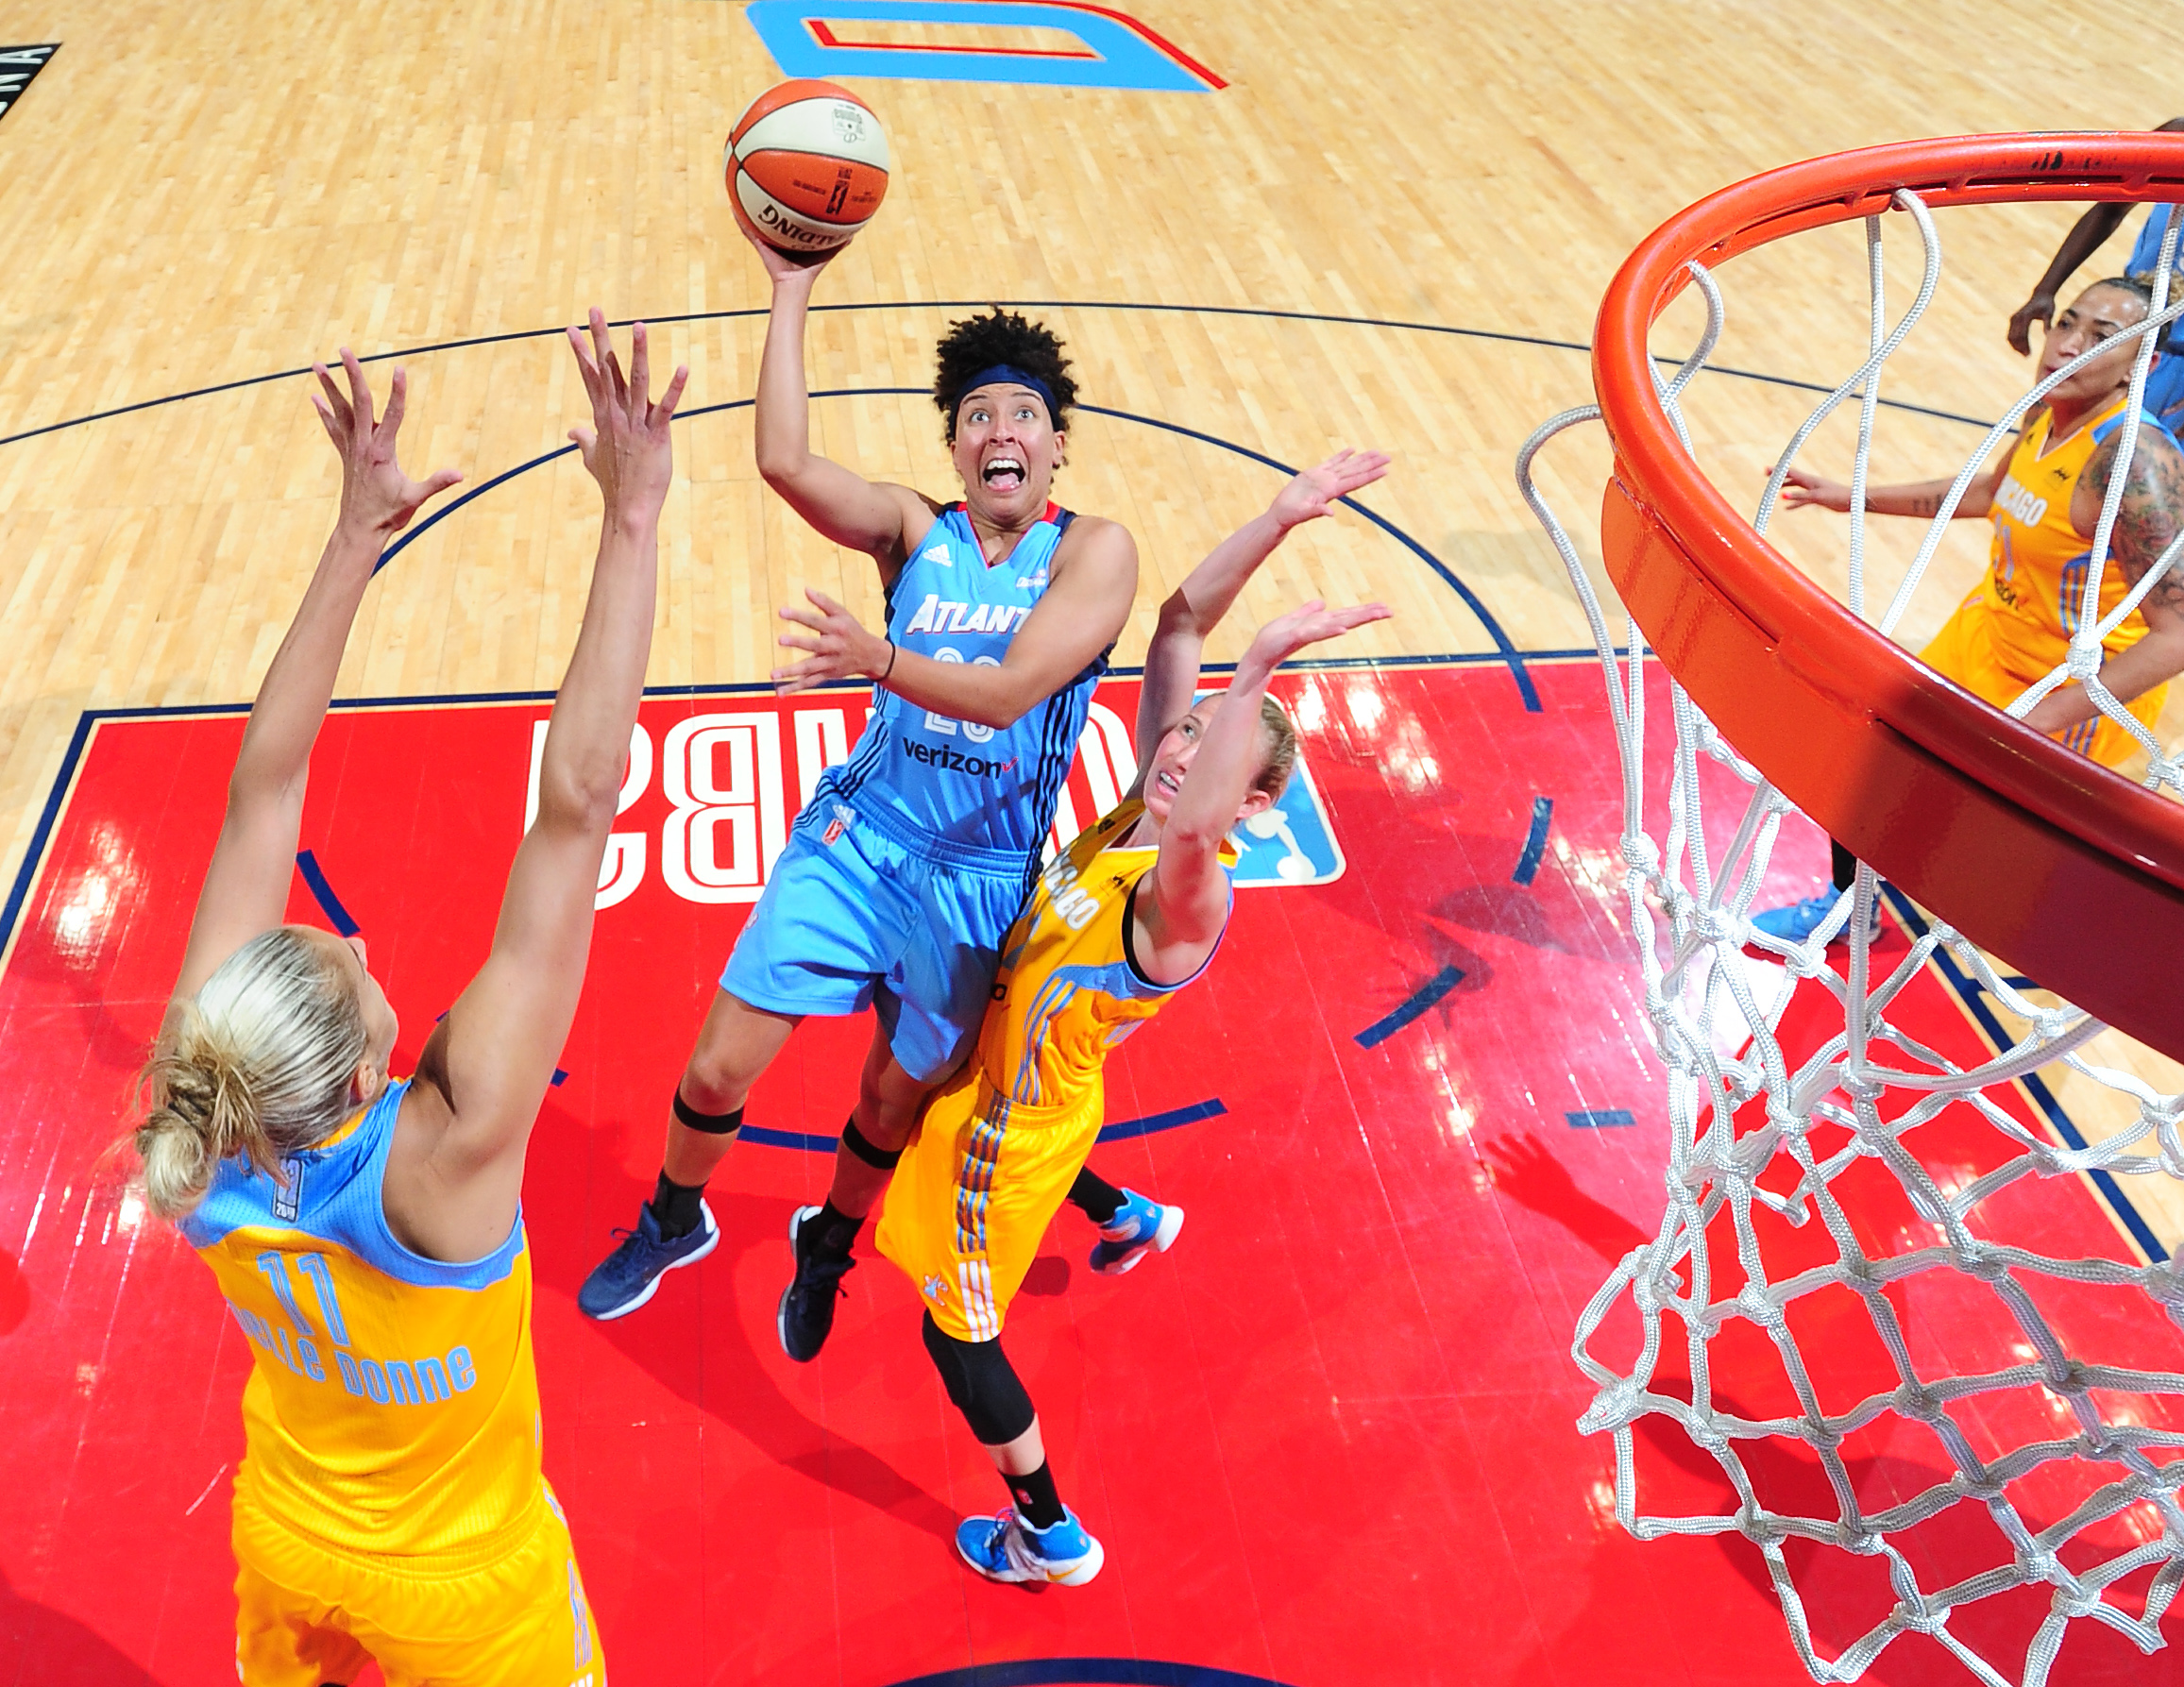 ATLANTA, GA - JUNE 17: Layshia Clarendon #23 of the Atlanta Dream goes to the basket against the Chicago Sky on June 17, 2016 at Philips Arena in Atlanta, Georgia. NOTE TO USER: User expressly acknowledges and agrees that, by downloading and/or using this Photograph, user is consenting to the terms and conditions of the Getty Images License Agreement. Mandatory Copyright Notice: Copyright 2016 NBAE (Photo by Scott Cunningham/NBAE via Getty Images)